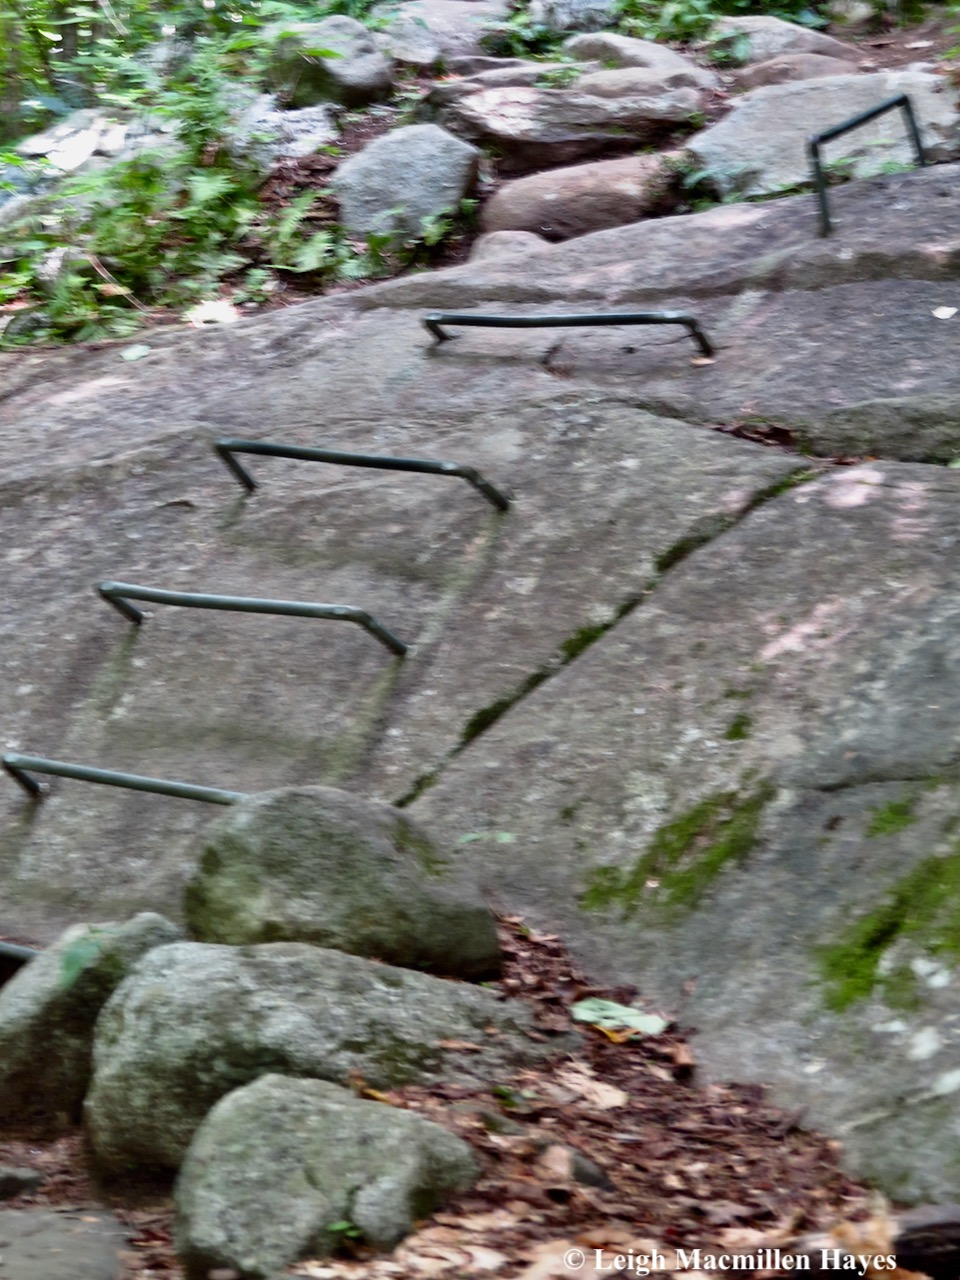 3-rungs on rocks